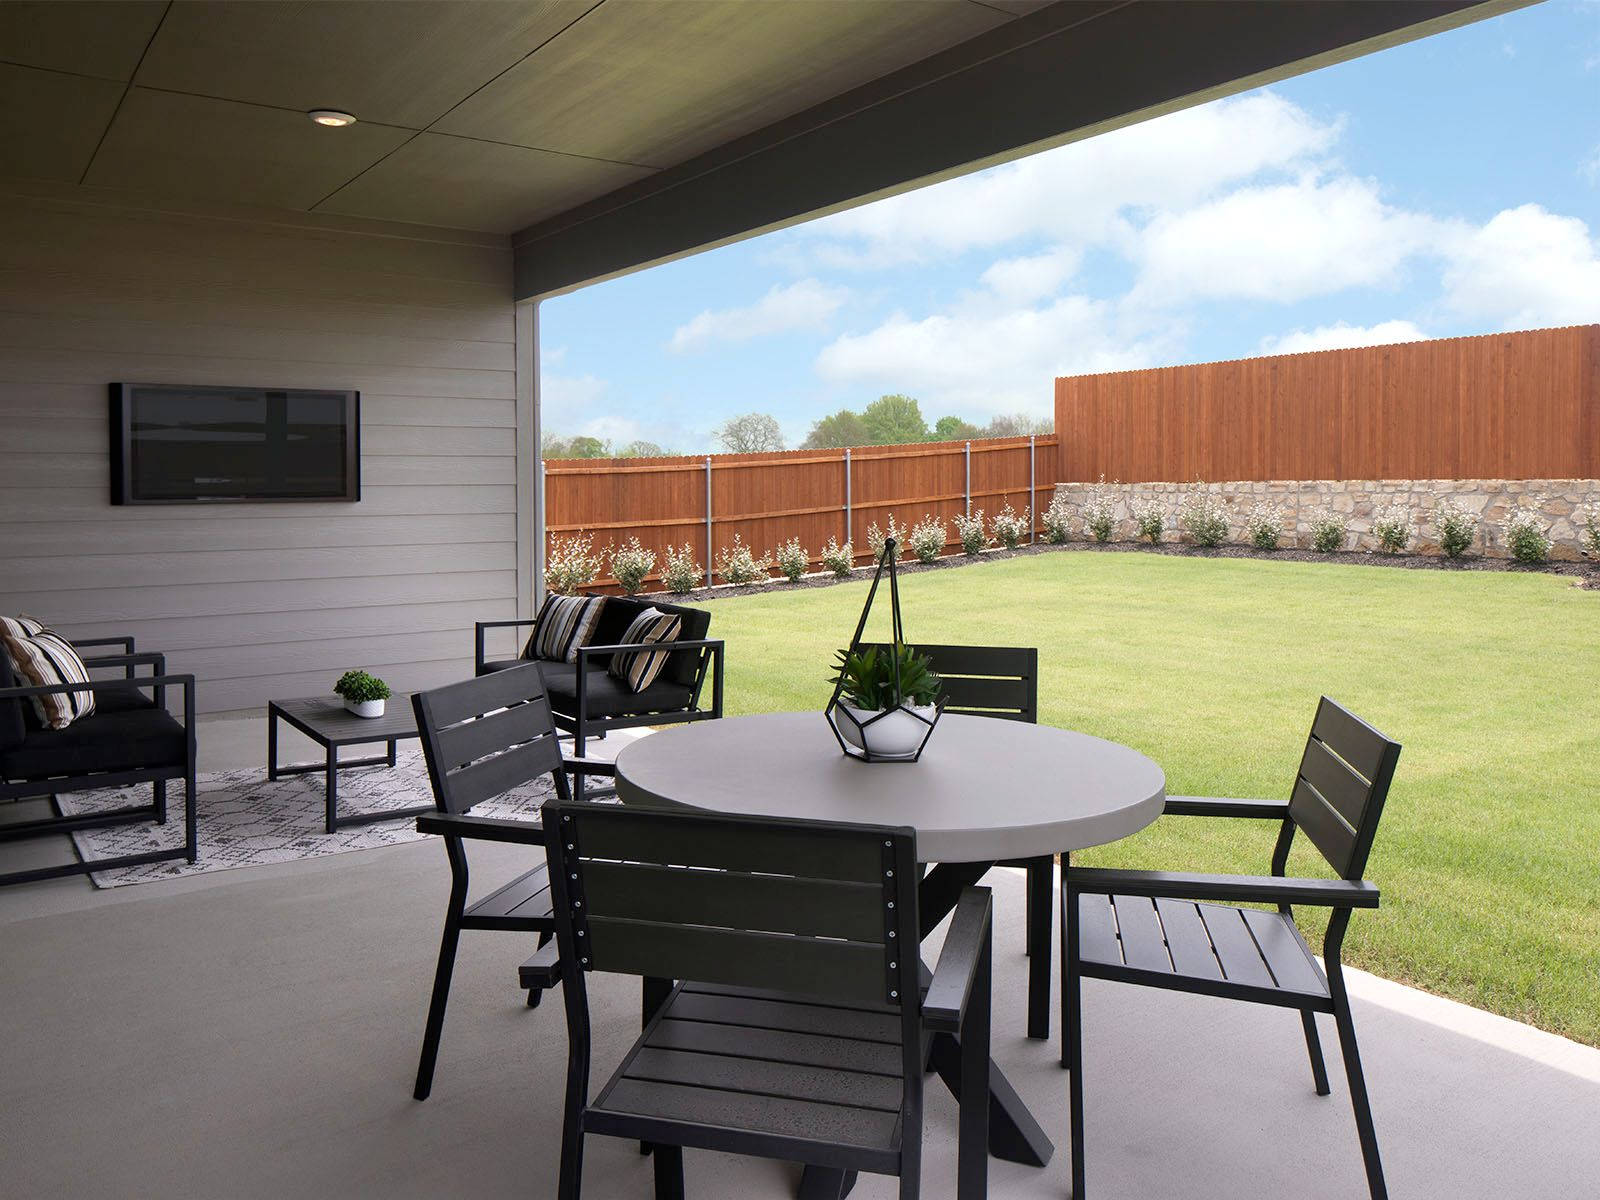 'Northstar' by Meritage Homes: Dallas/Ft. ... in Fort Worth